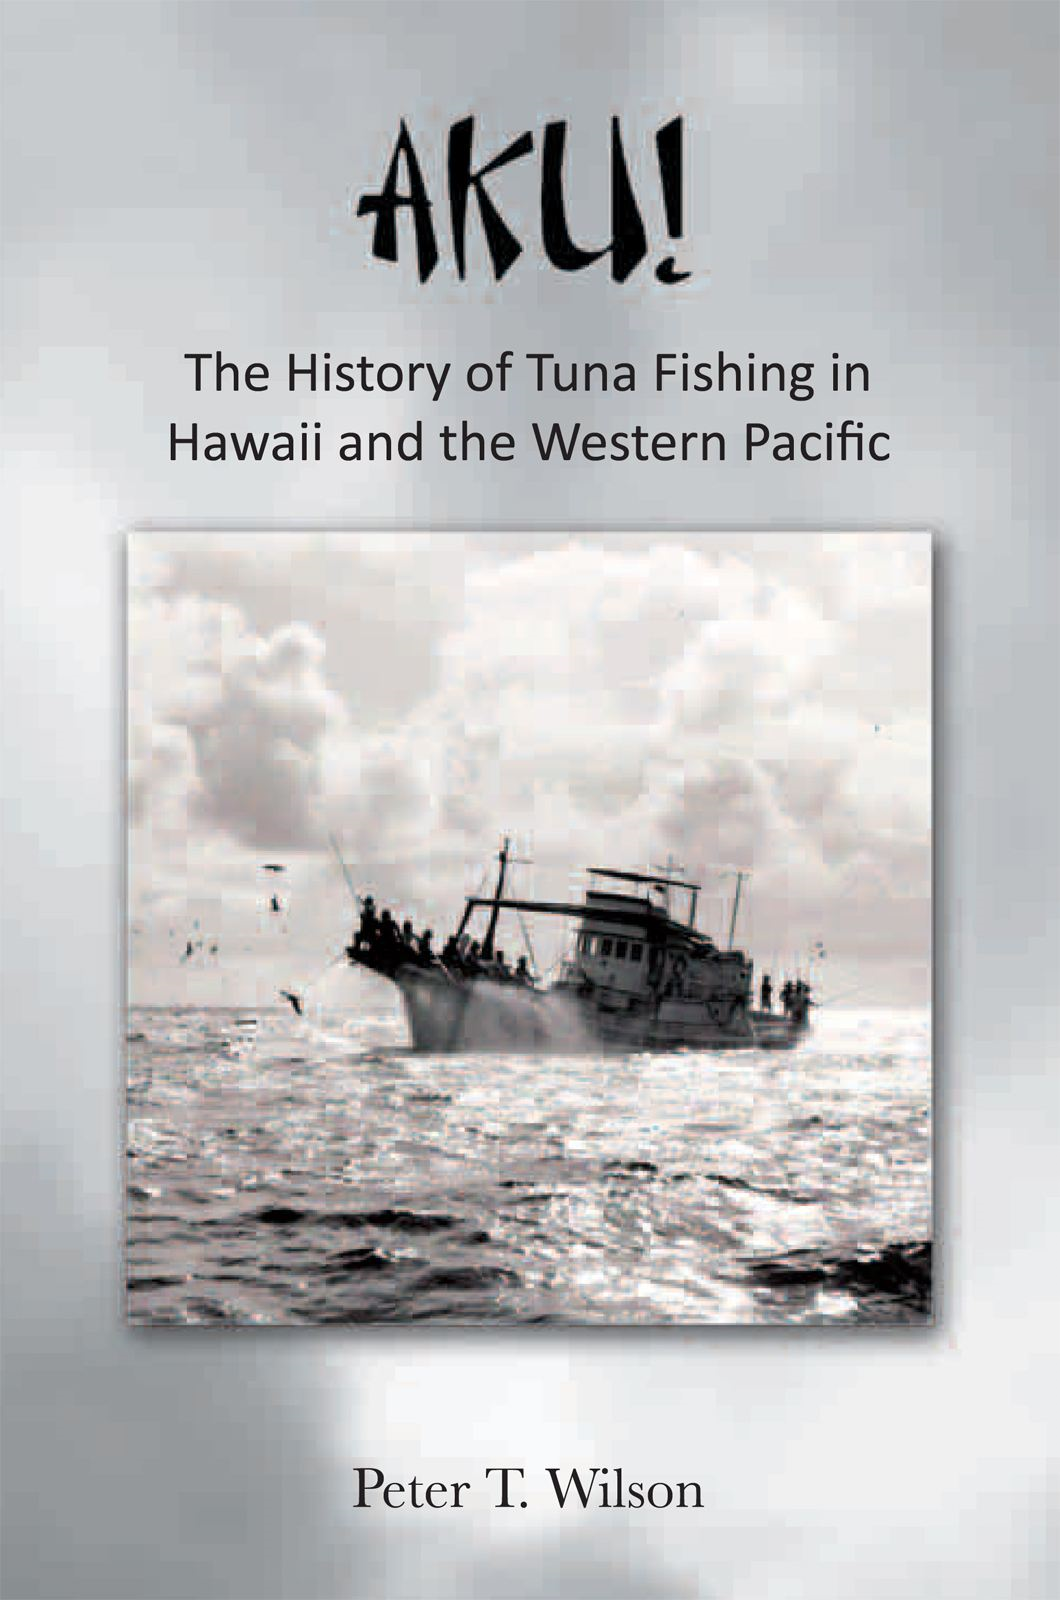 AKU! The History of Tuna Fishing in Hawaii and the Western Pacific